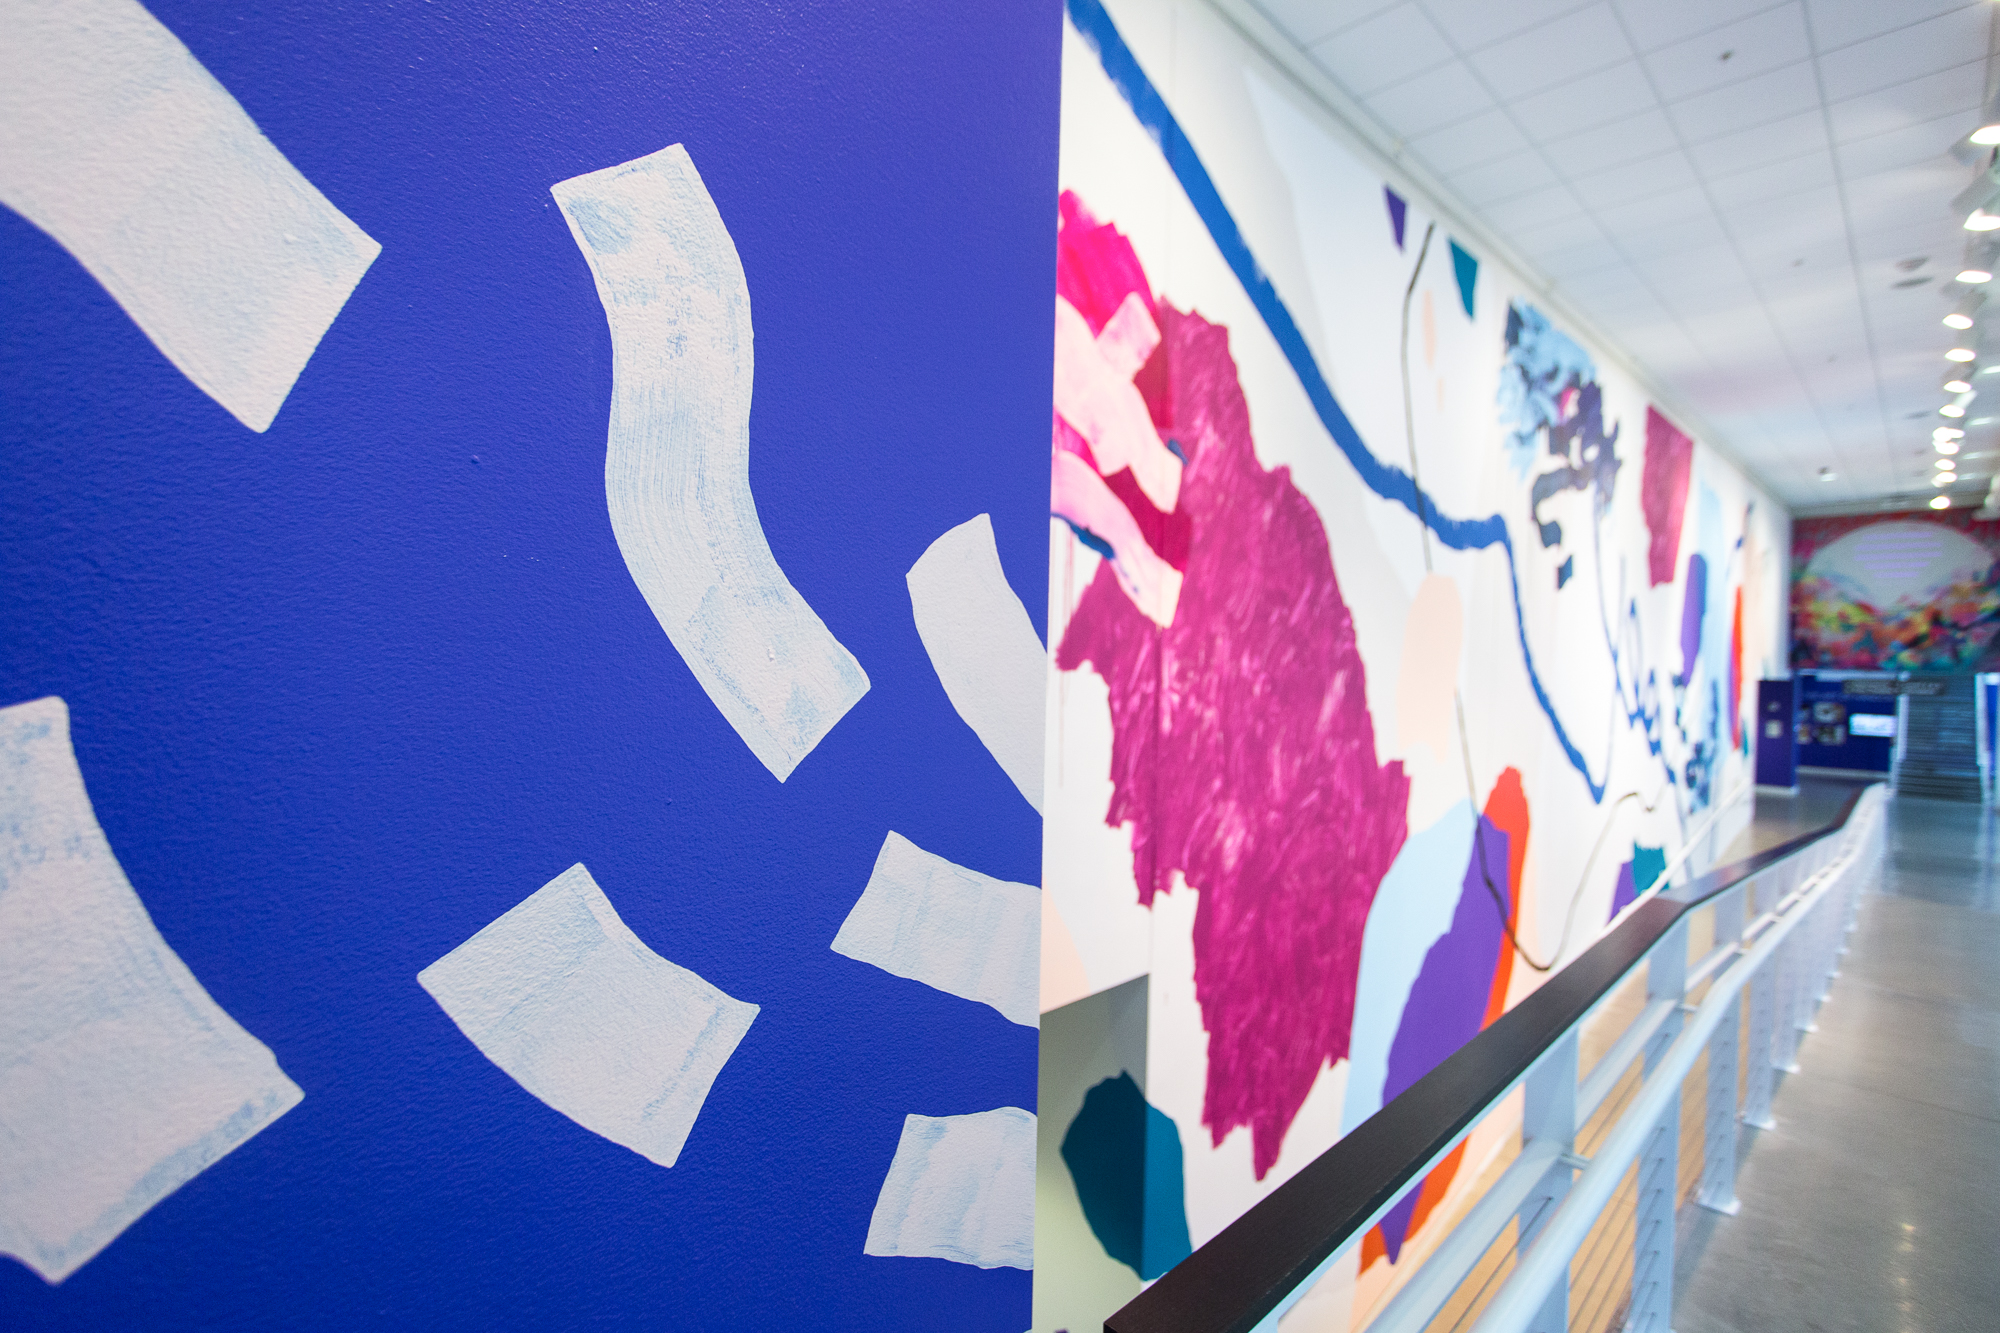 Heather Day's mural celebrating the Pantone Color of the Year - Ultraviolet at the Urban Institute of Contemporary Art